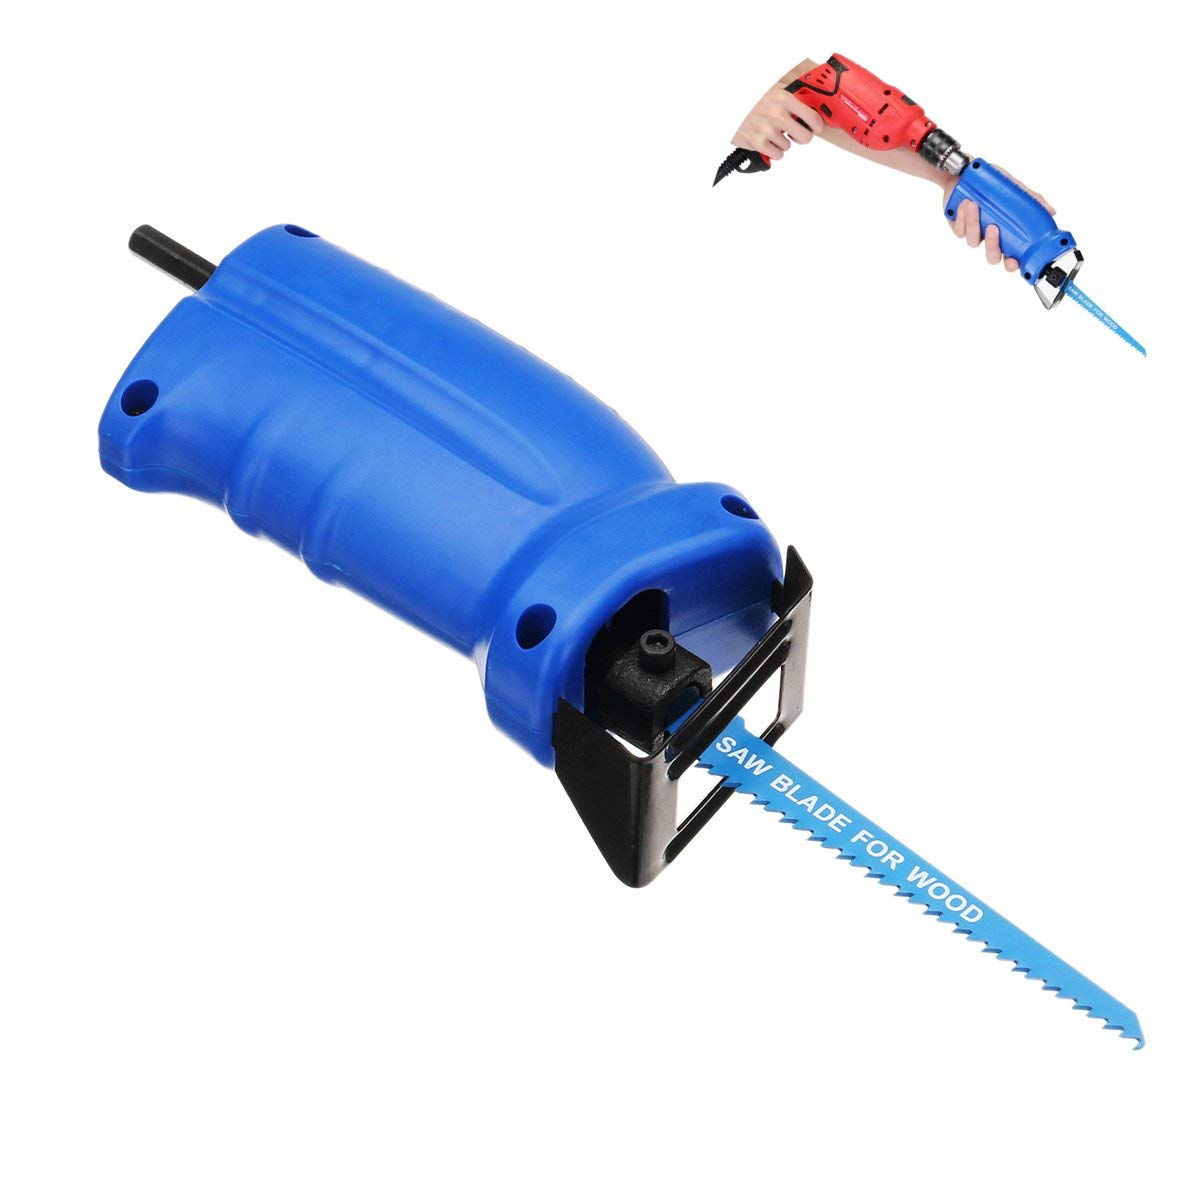 Get Quotationommy Drillpro Portable Reciprocating Saw Adapter Set Changed Electric Drill Into